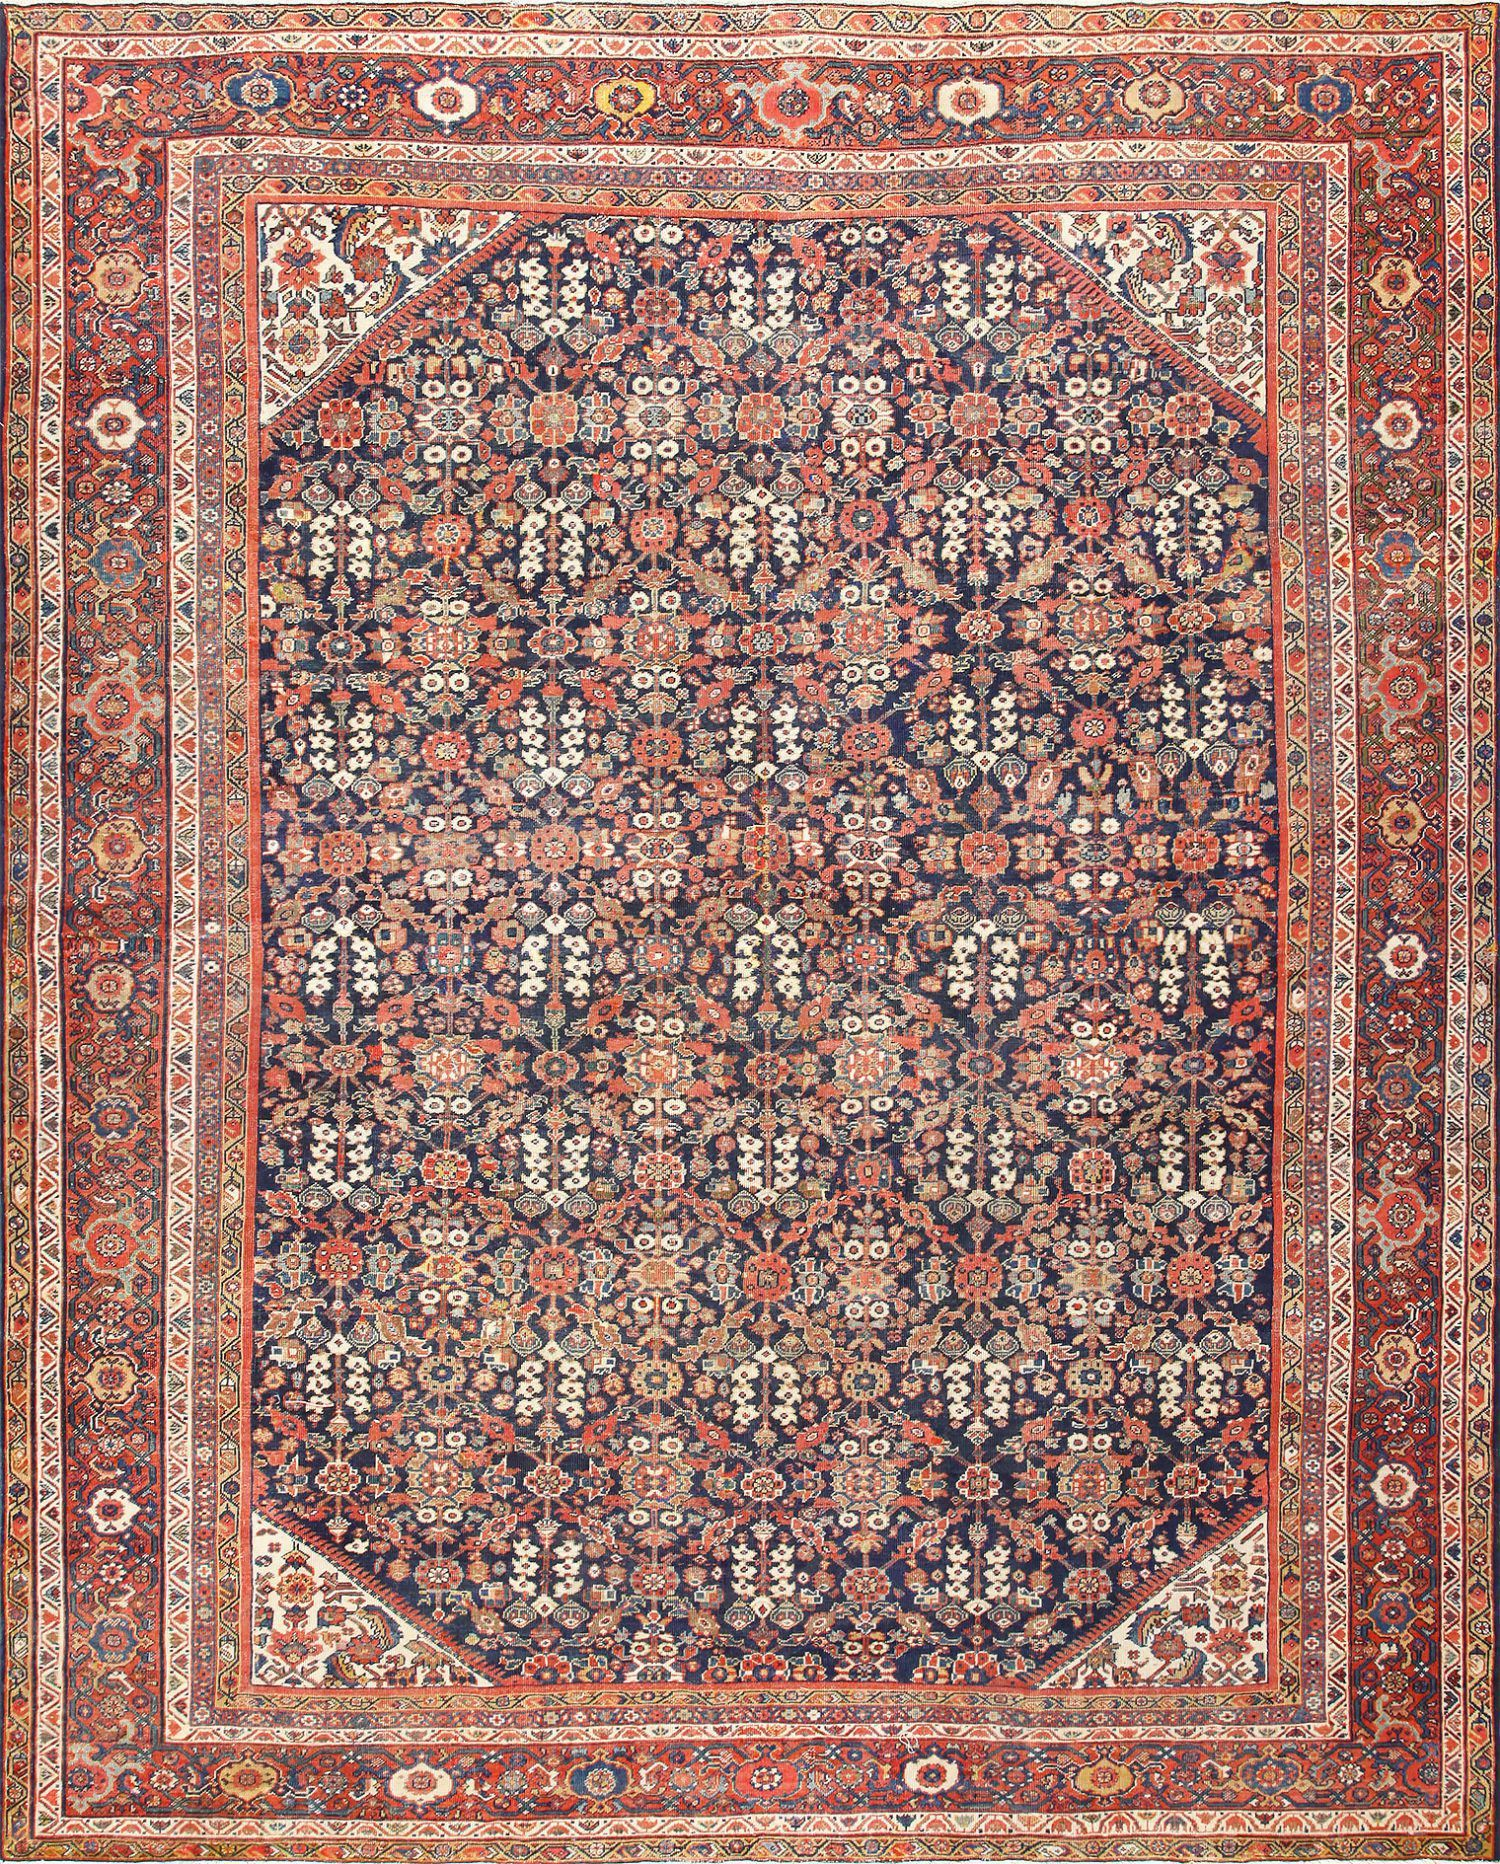 Blue Background Persian Antique Sultanabad Rug 50684 By Nazmiyal Sultanabad Rug Antique Persian Rug Antique Oriental Rugs